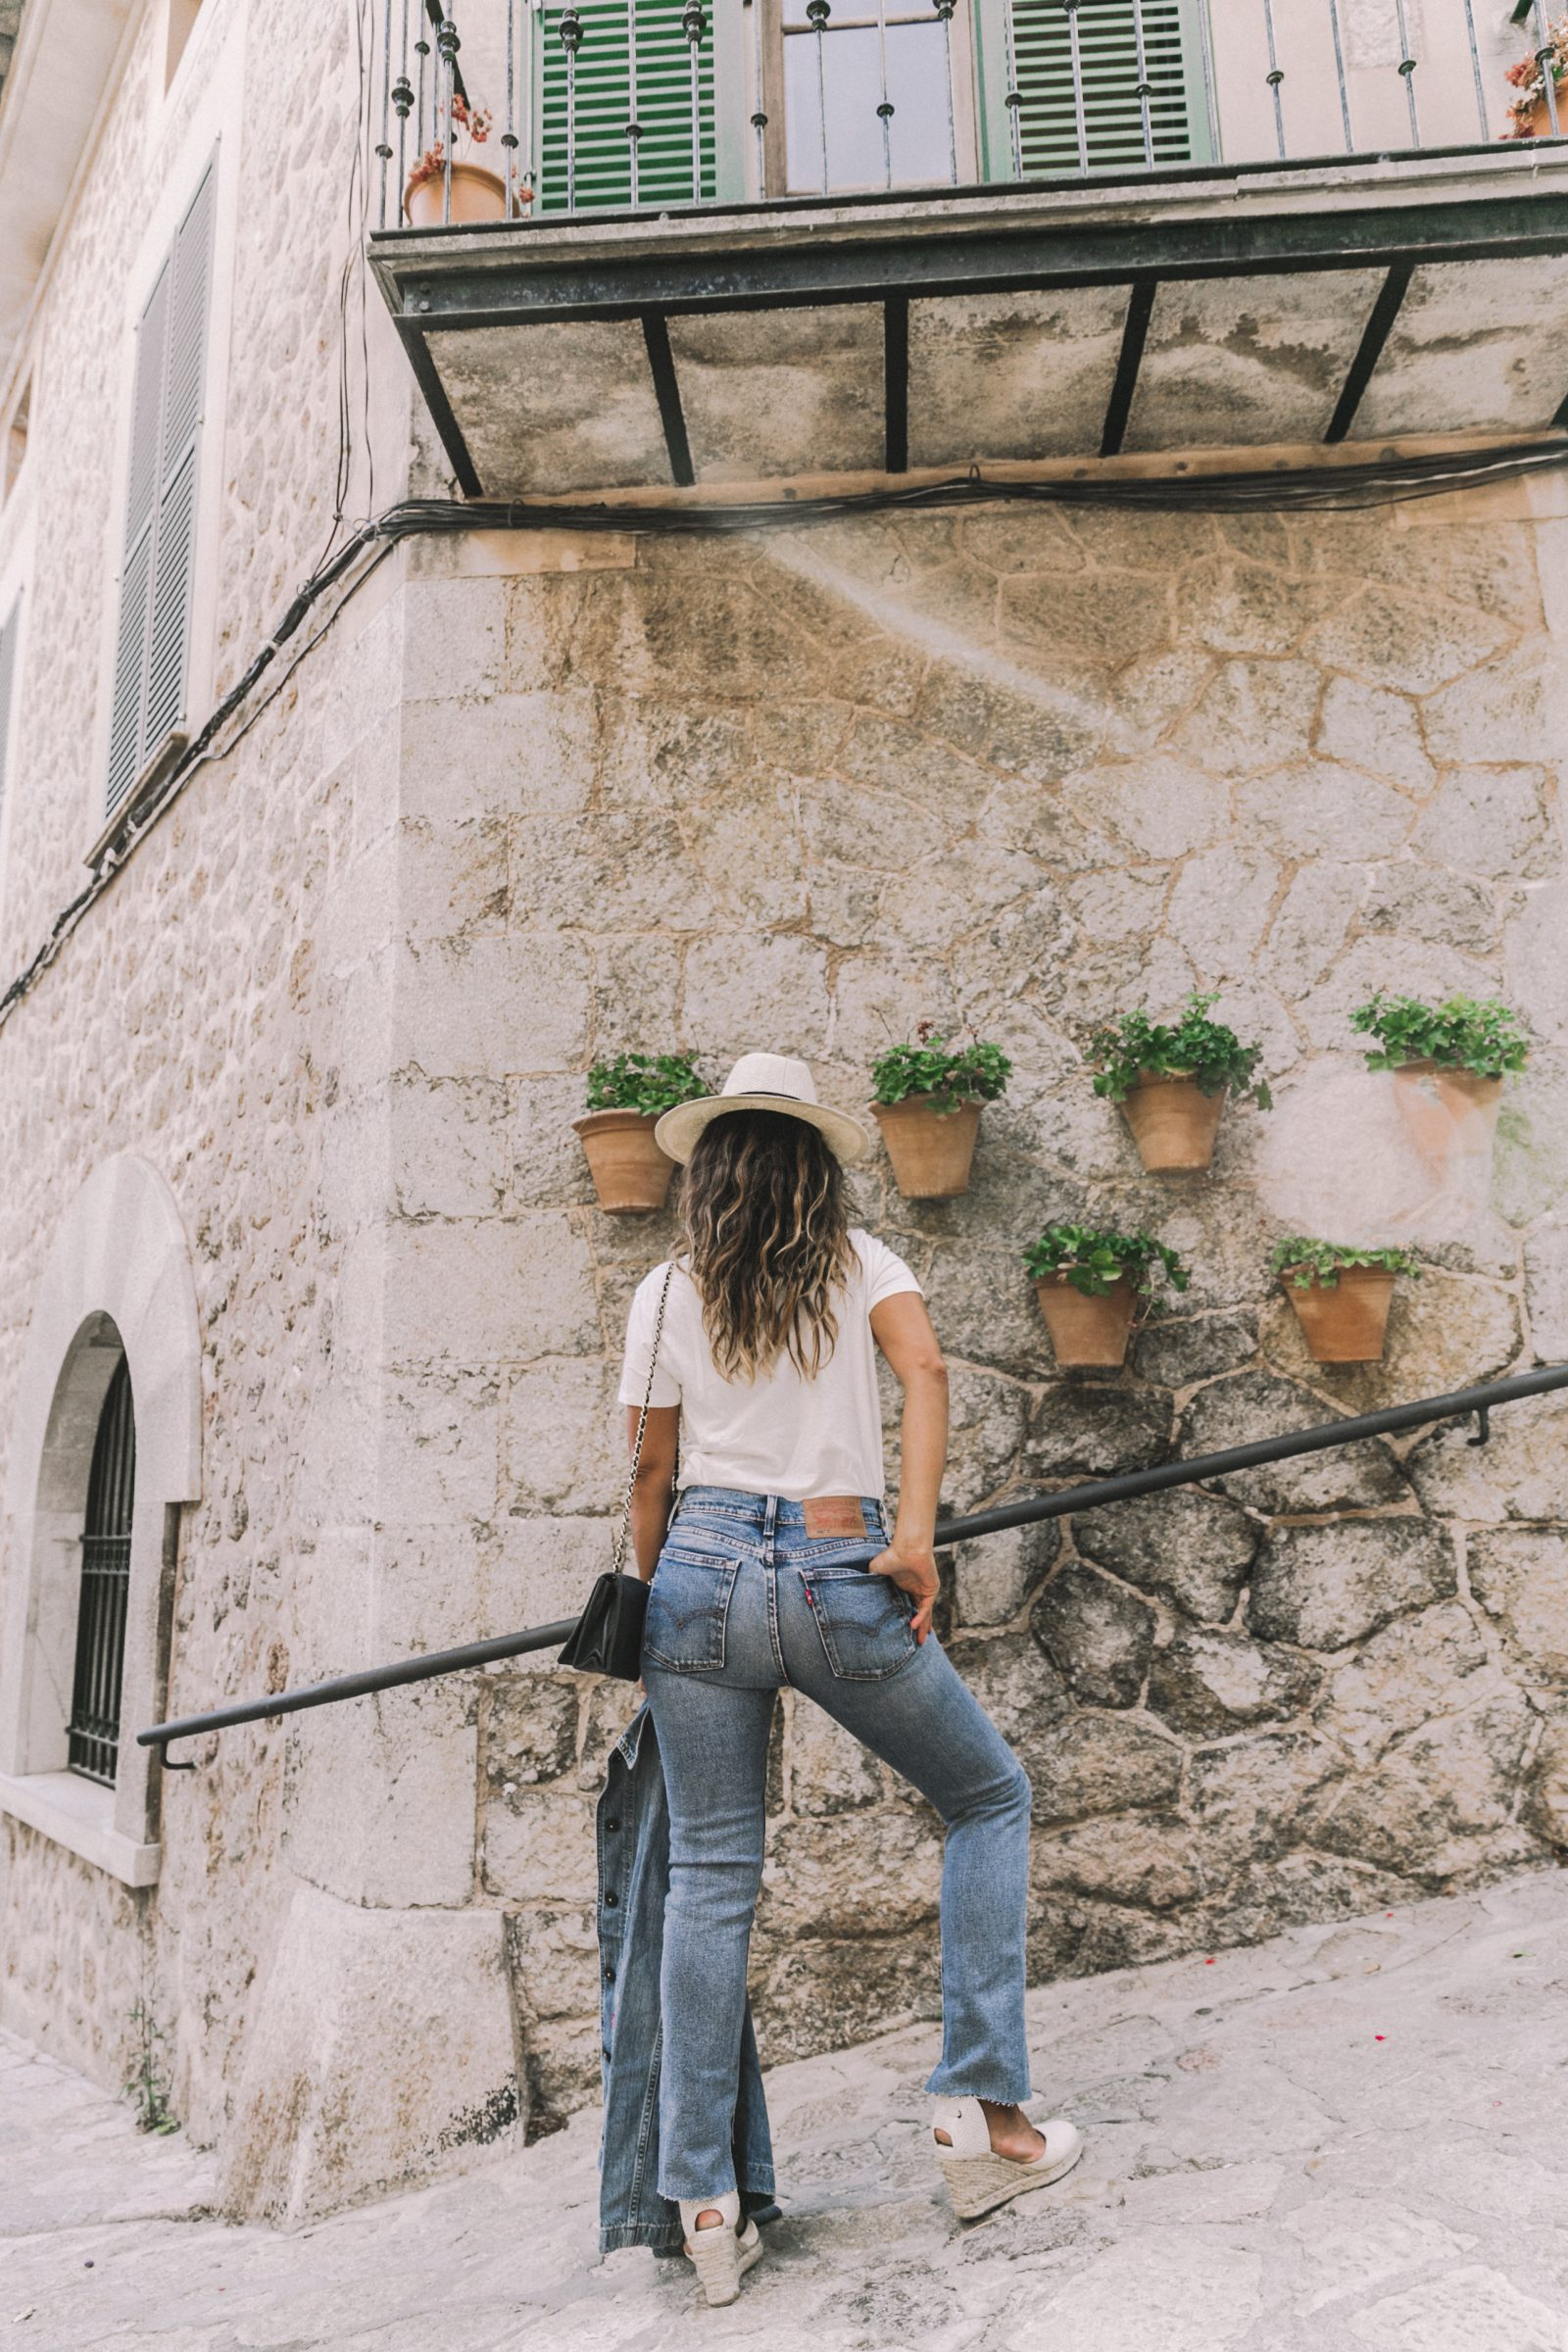 Live_in_Levis-Denim-Who_What_Wear-Levis-Denim-Double_Denim-Menorca-Street_Style-Collage_Vintage-66